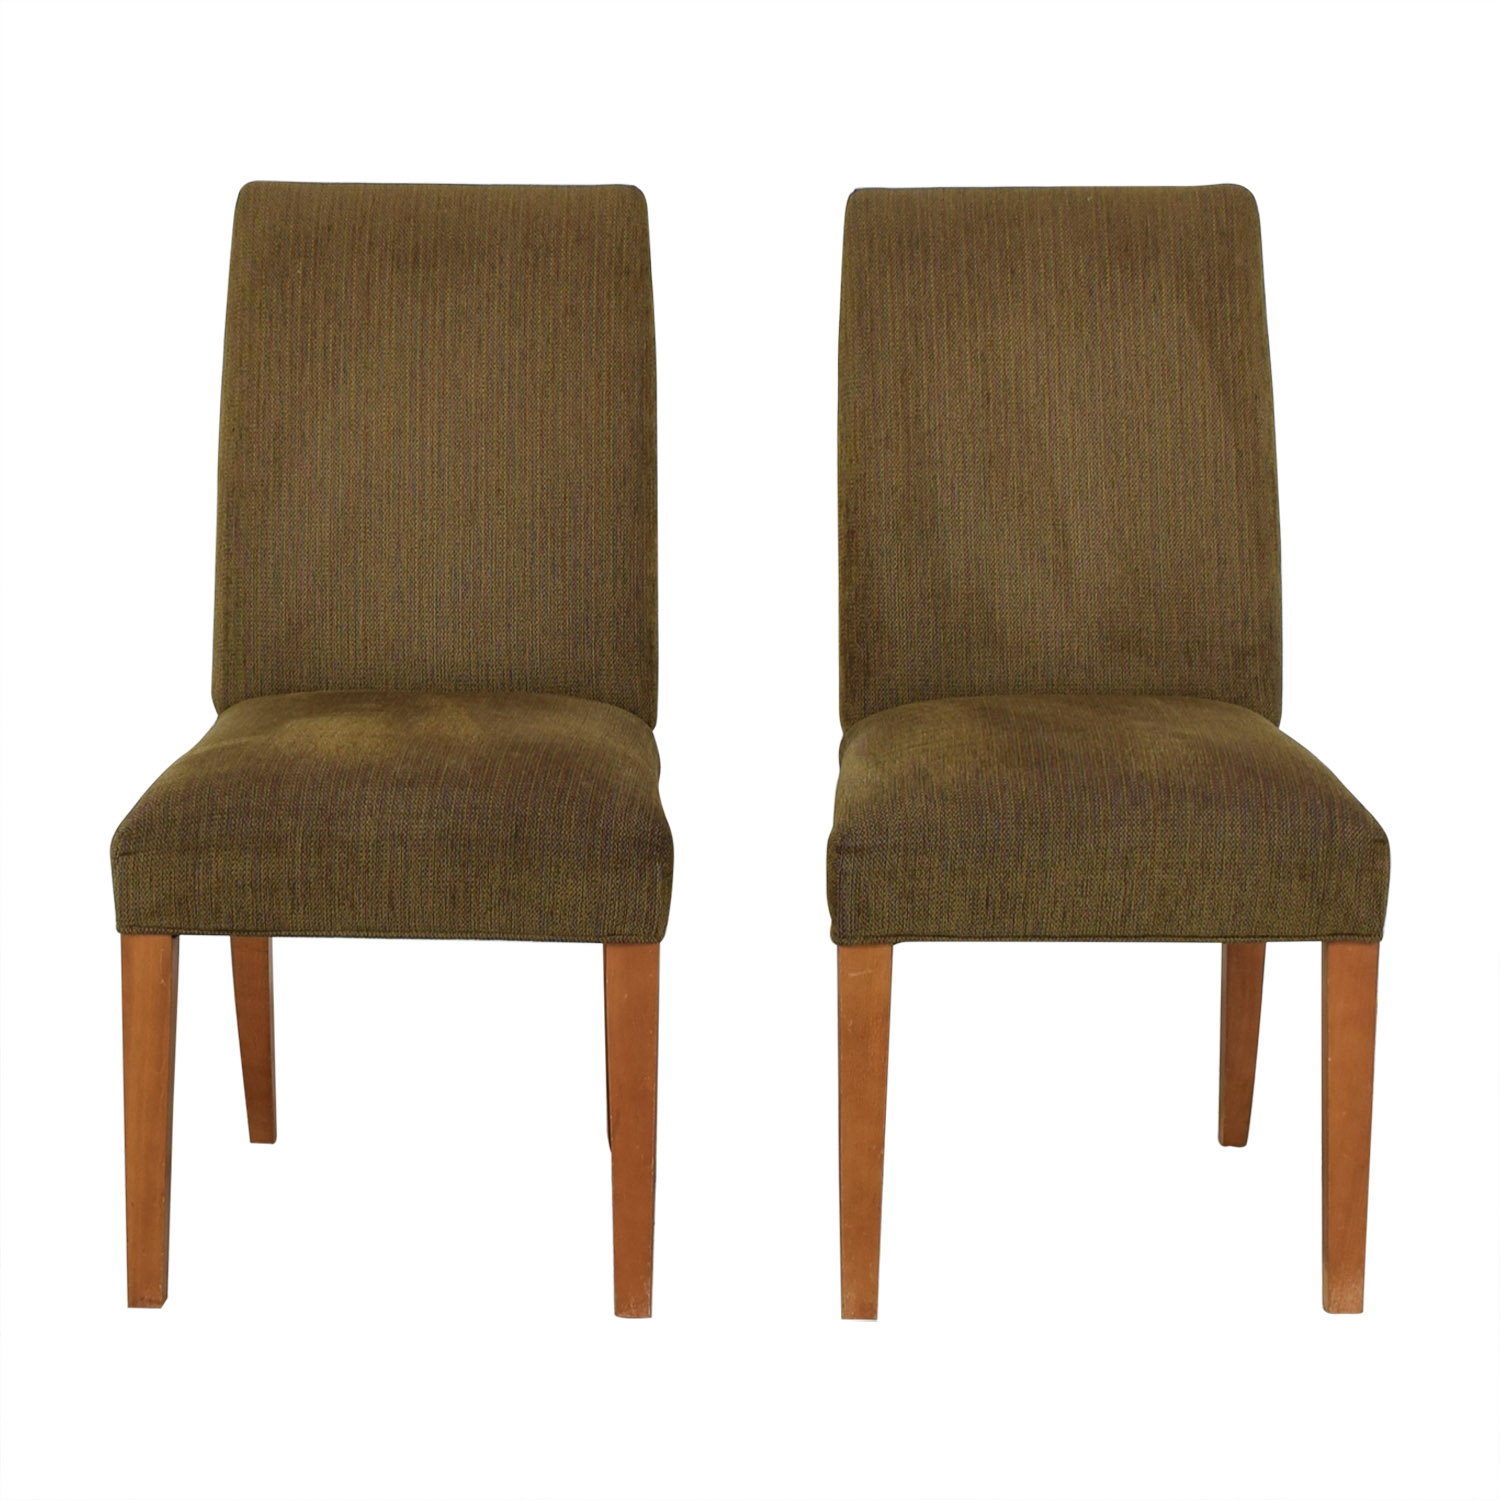 buy McCreary Modern Ava Dining Chairs McCreary Modern Chairs